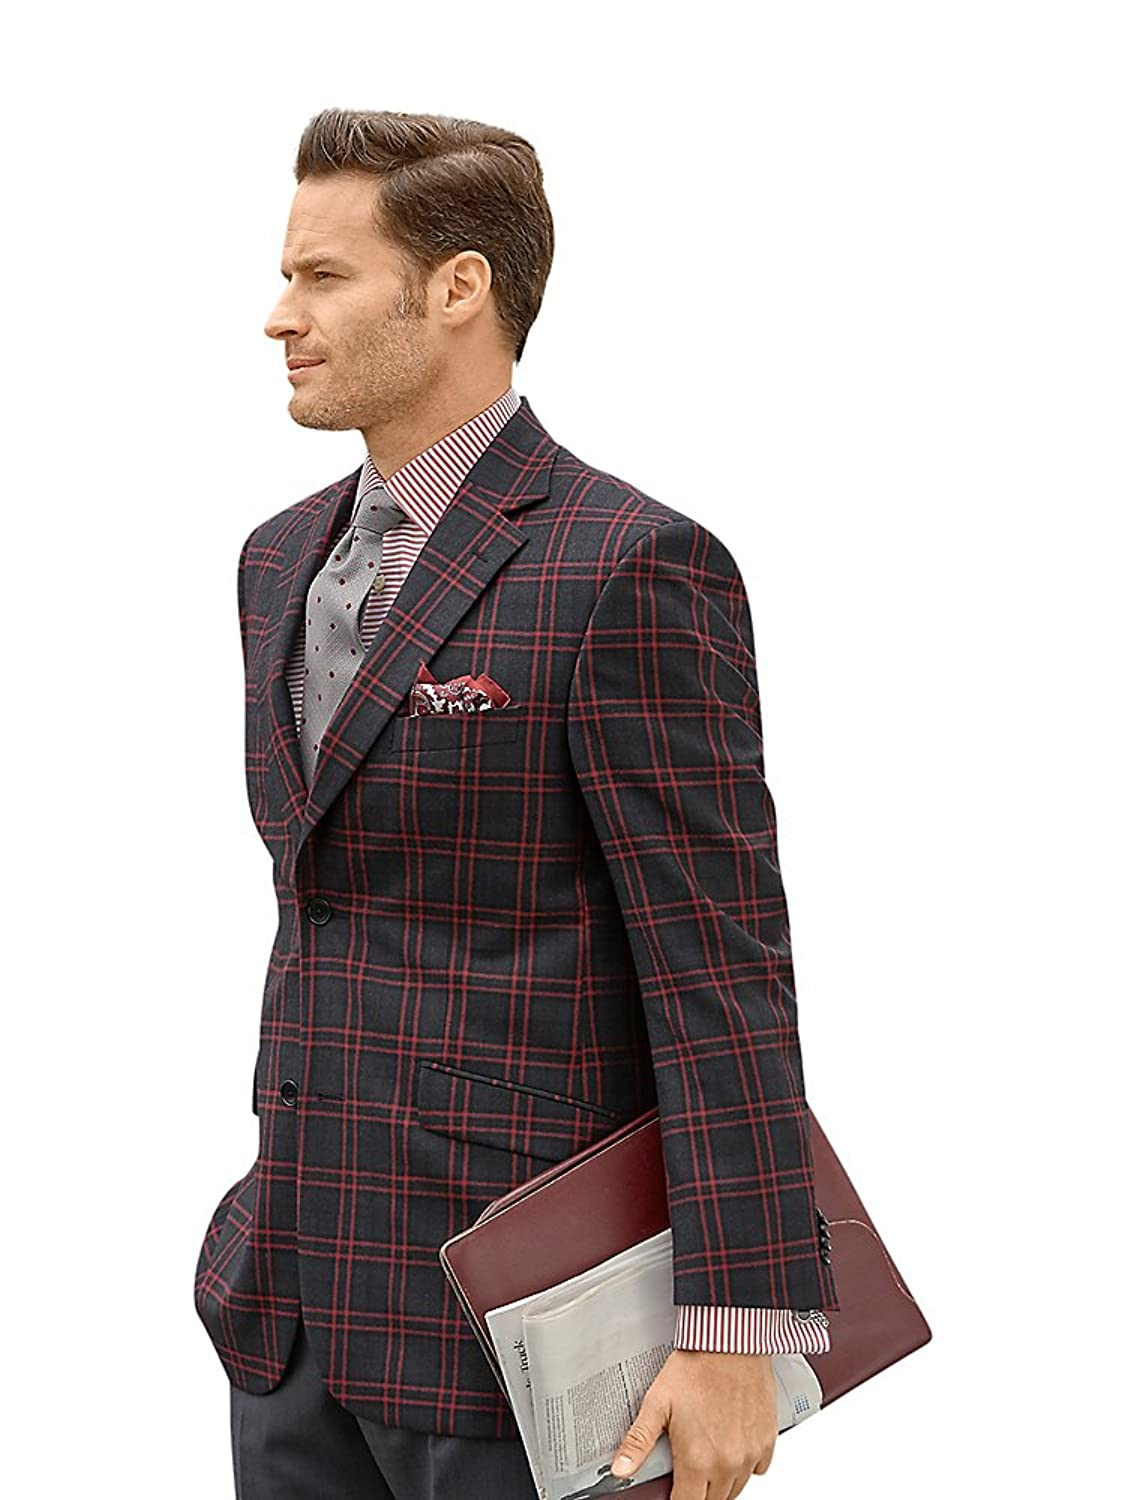 1960s Men's Clothing, 70s Men's Fashion Paul Fredrick Mens Wool Plaid Sport Coat $229.98 AT vintagedancer.com